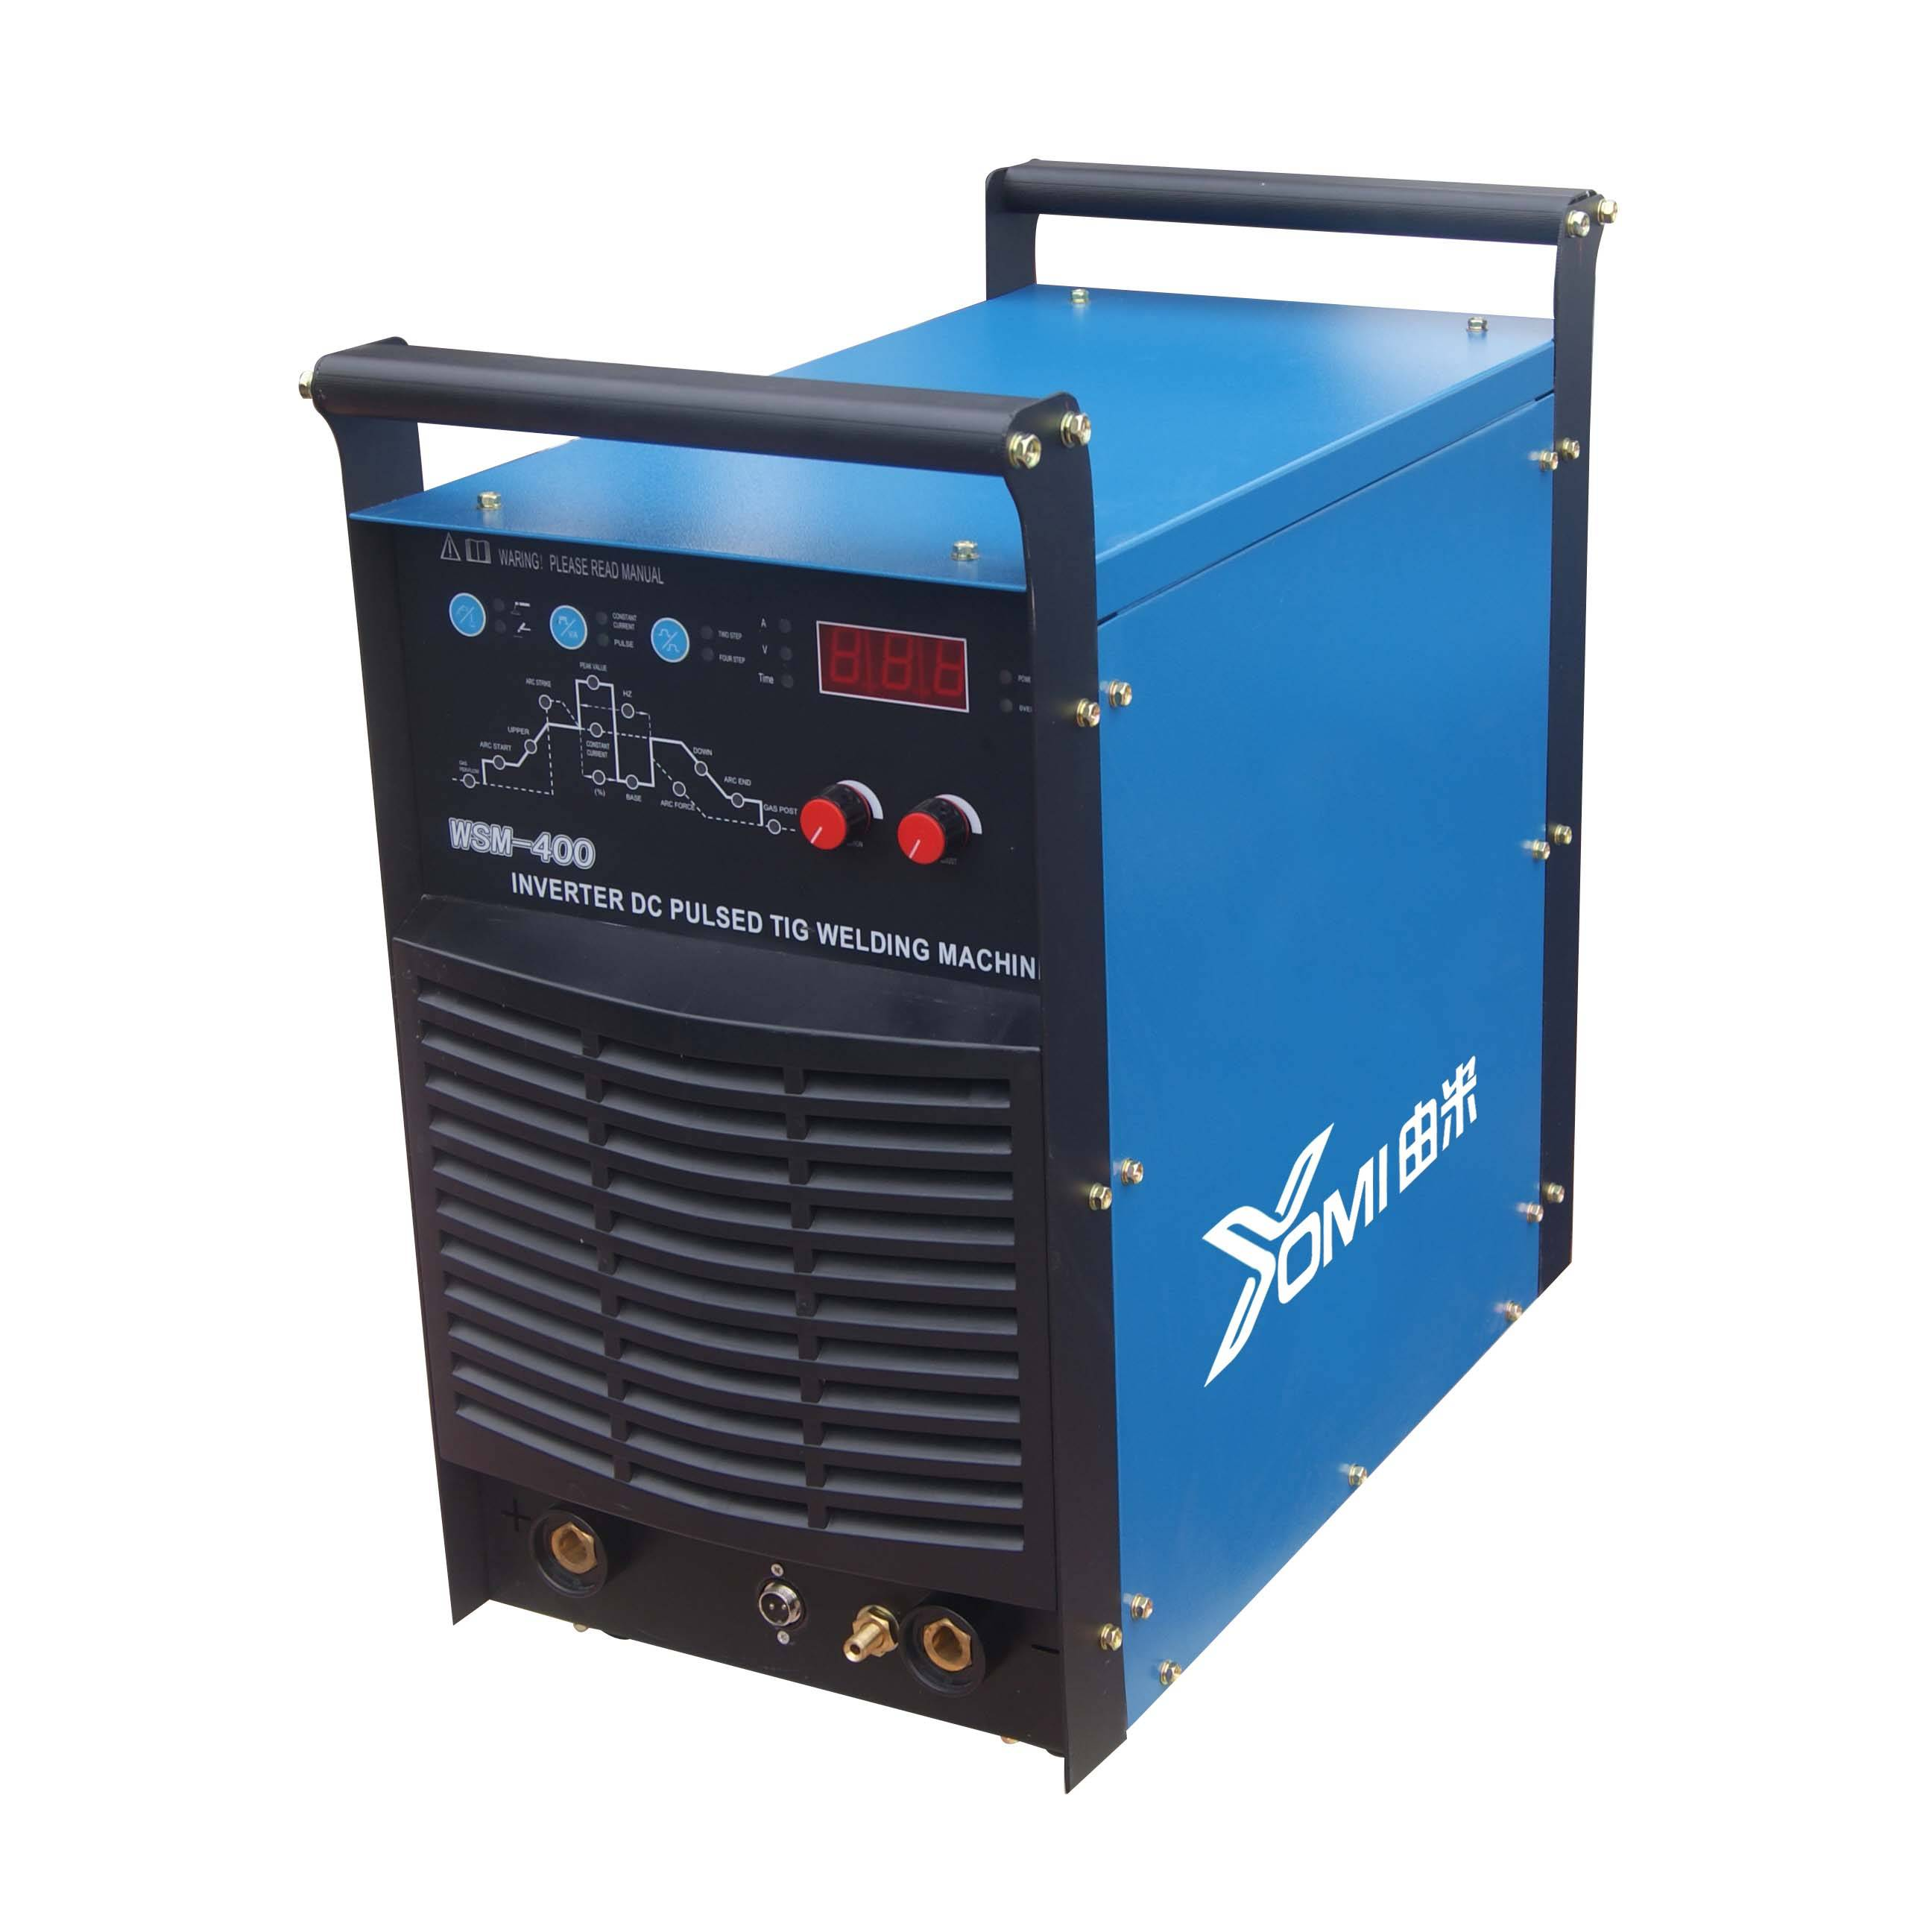 Wholesale Dealers of Welding Machine And Equipment -